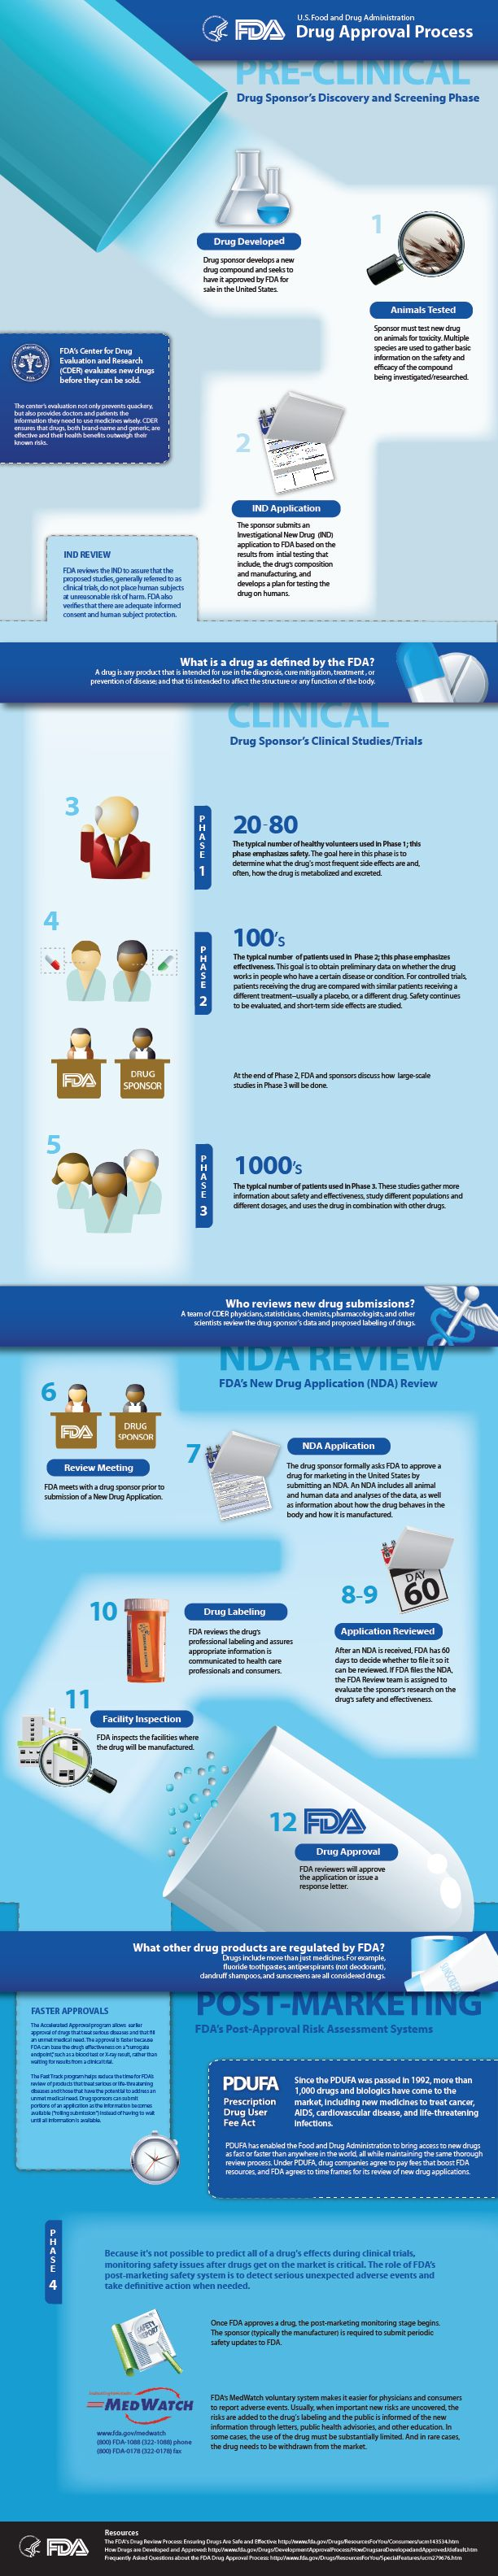 FDA Drug Approval Process Infographic Horizontal